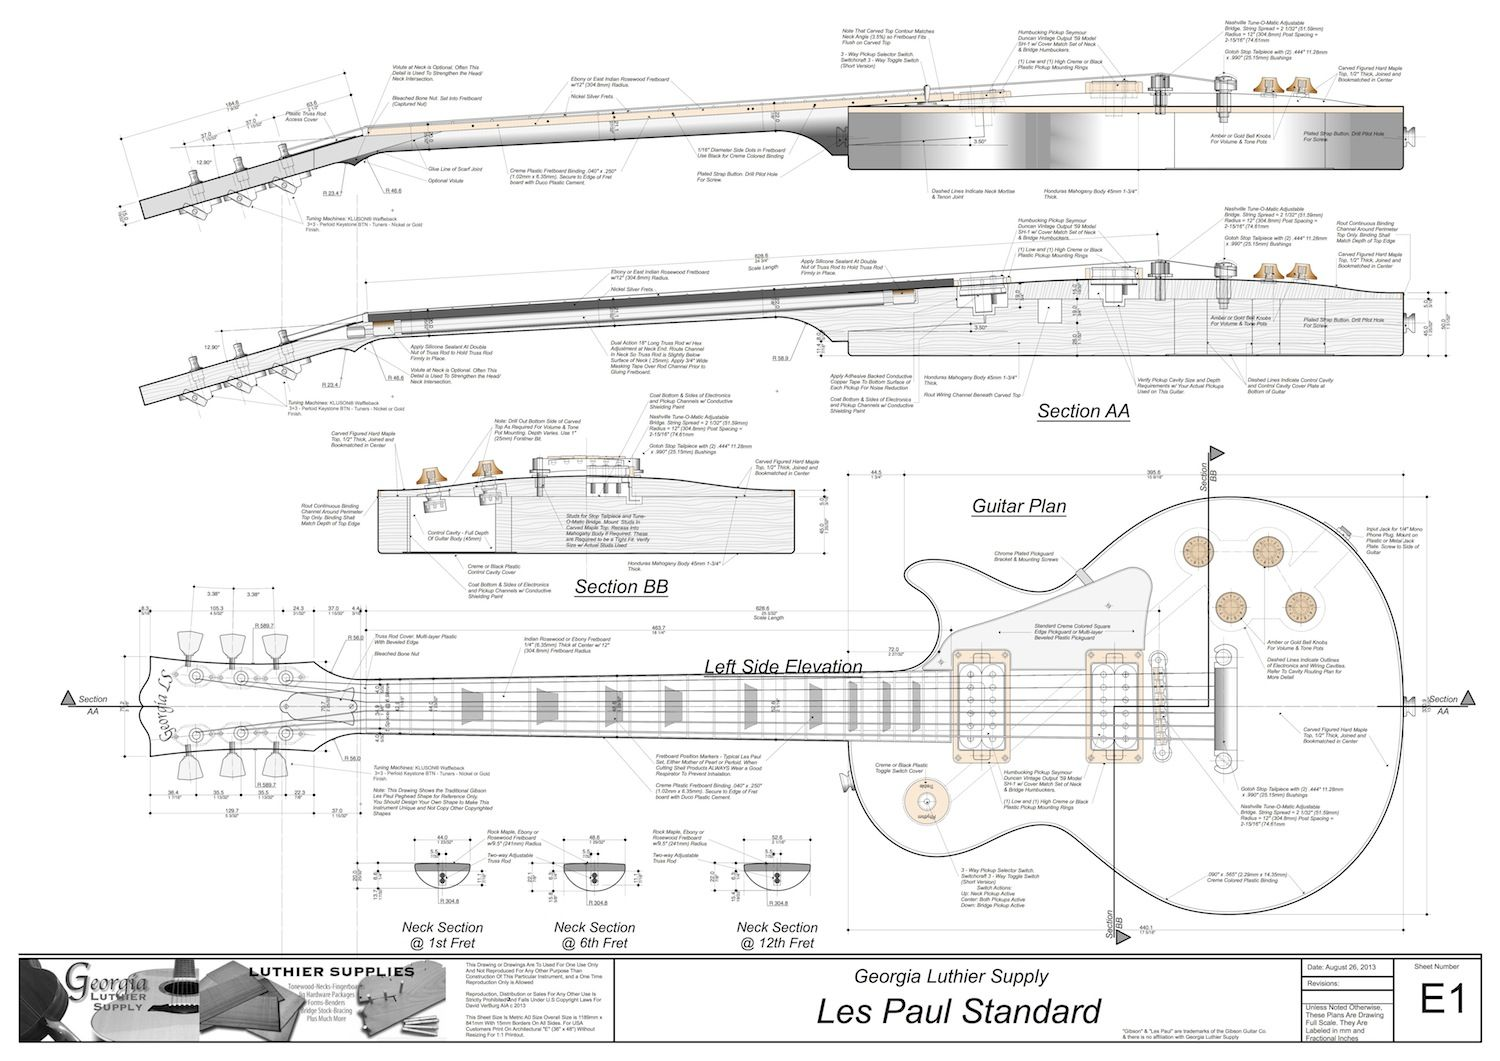 wiring diagram for les paul style guitar diagrams give information about body dimensions Идеи для дома pinterest